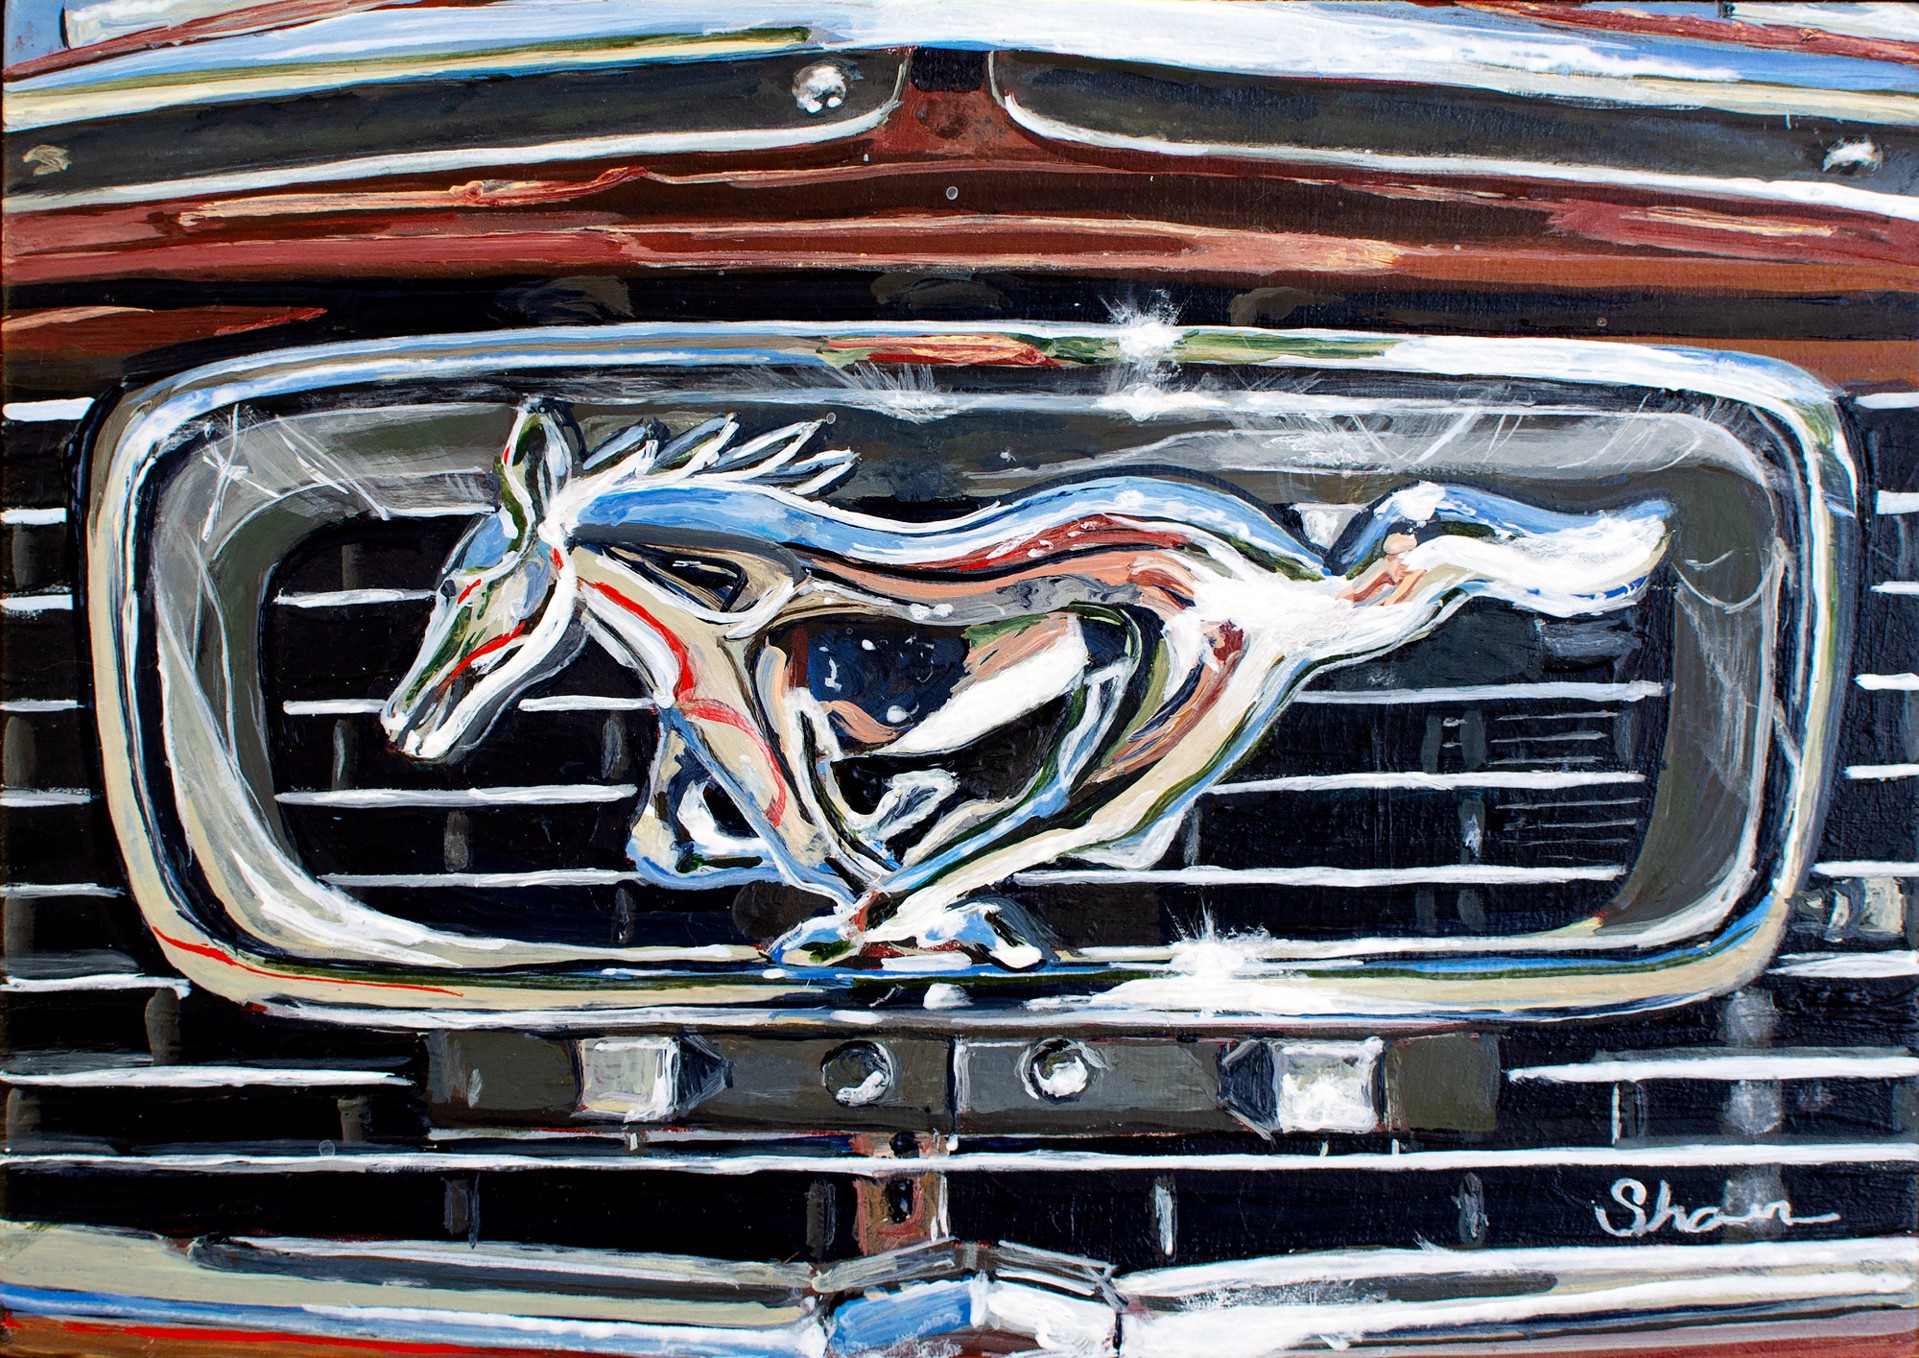 Mustang Grill Ornament by Shan Fannin